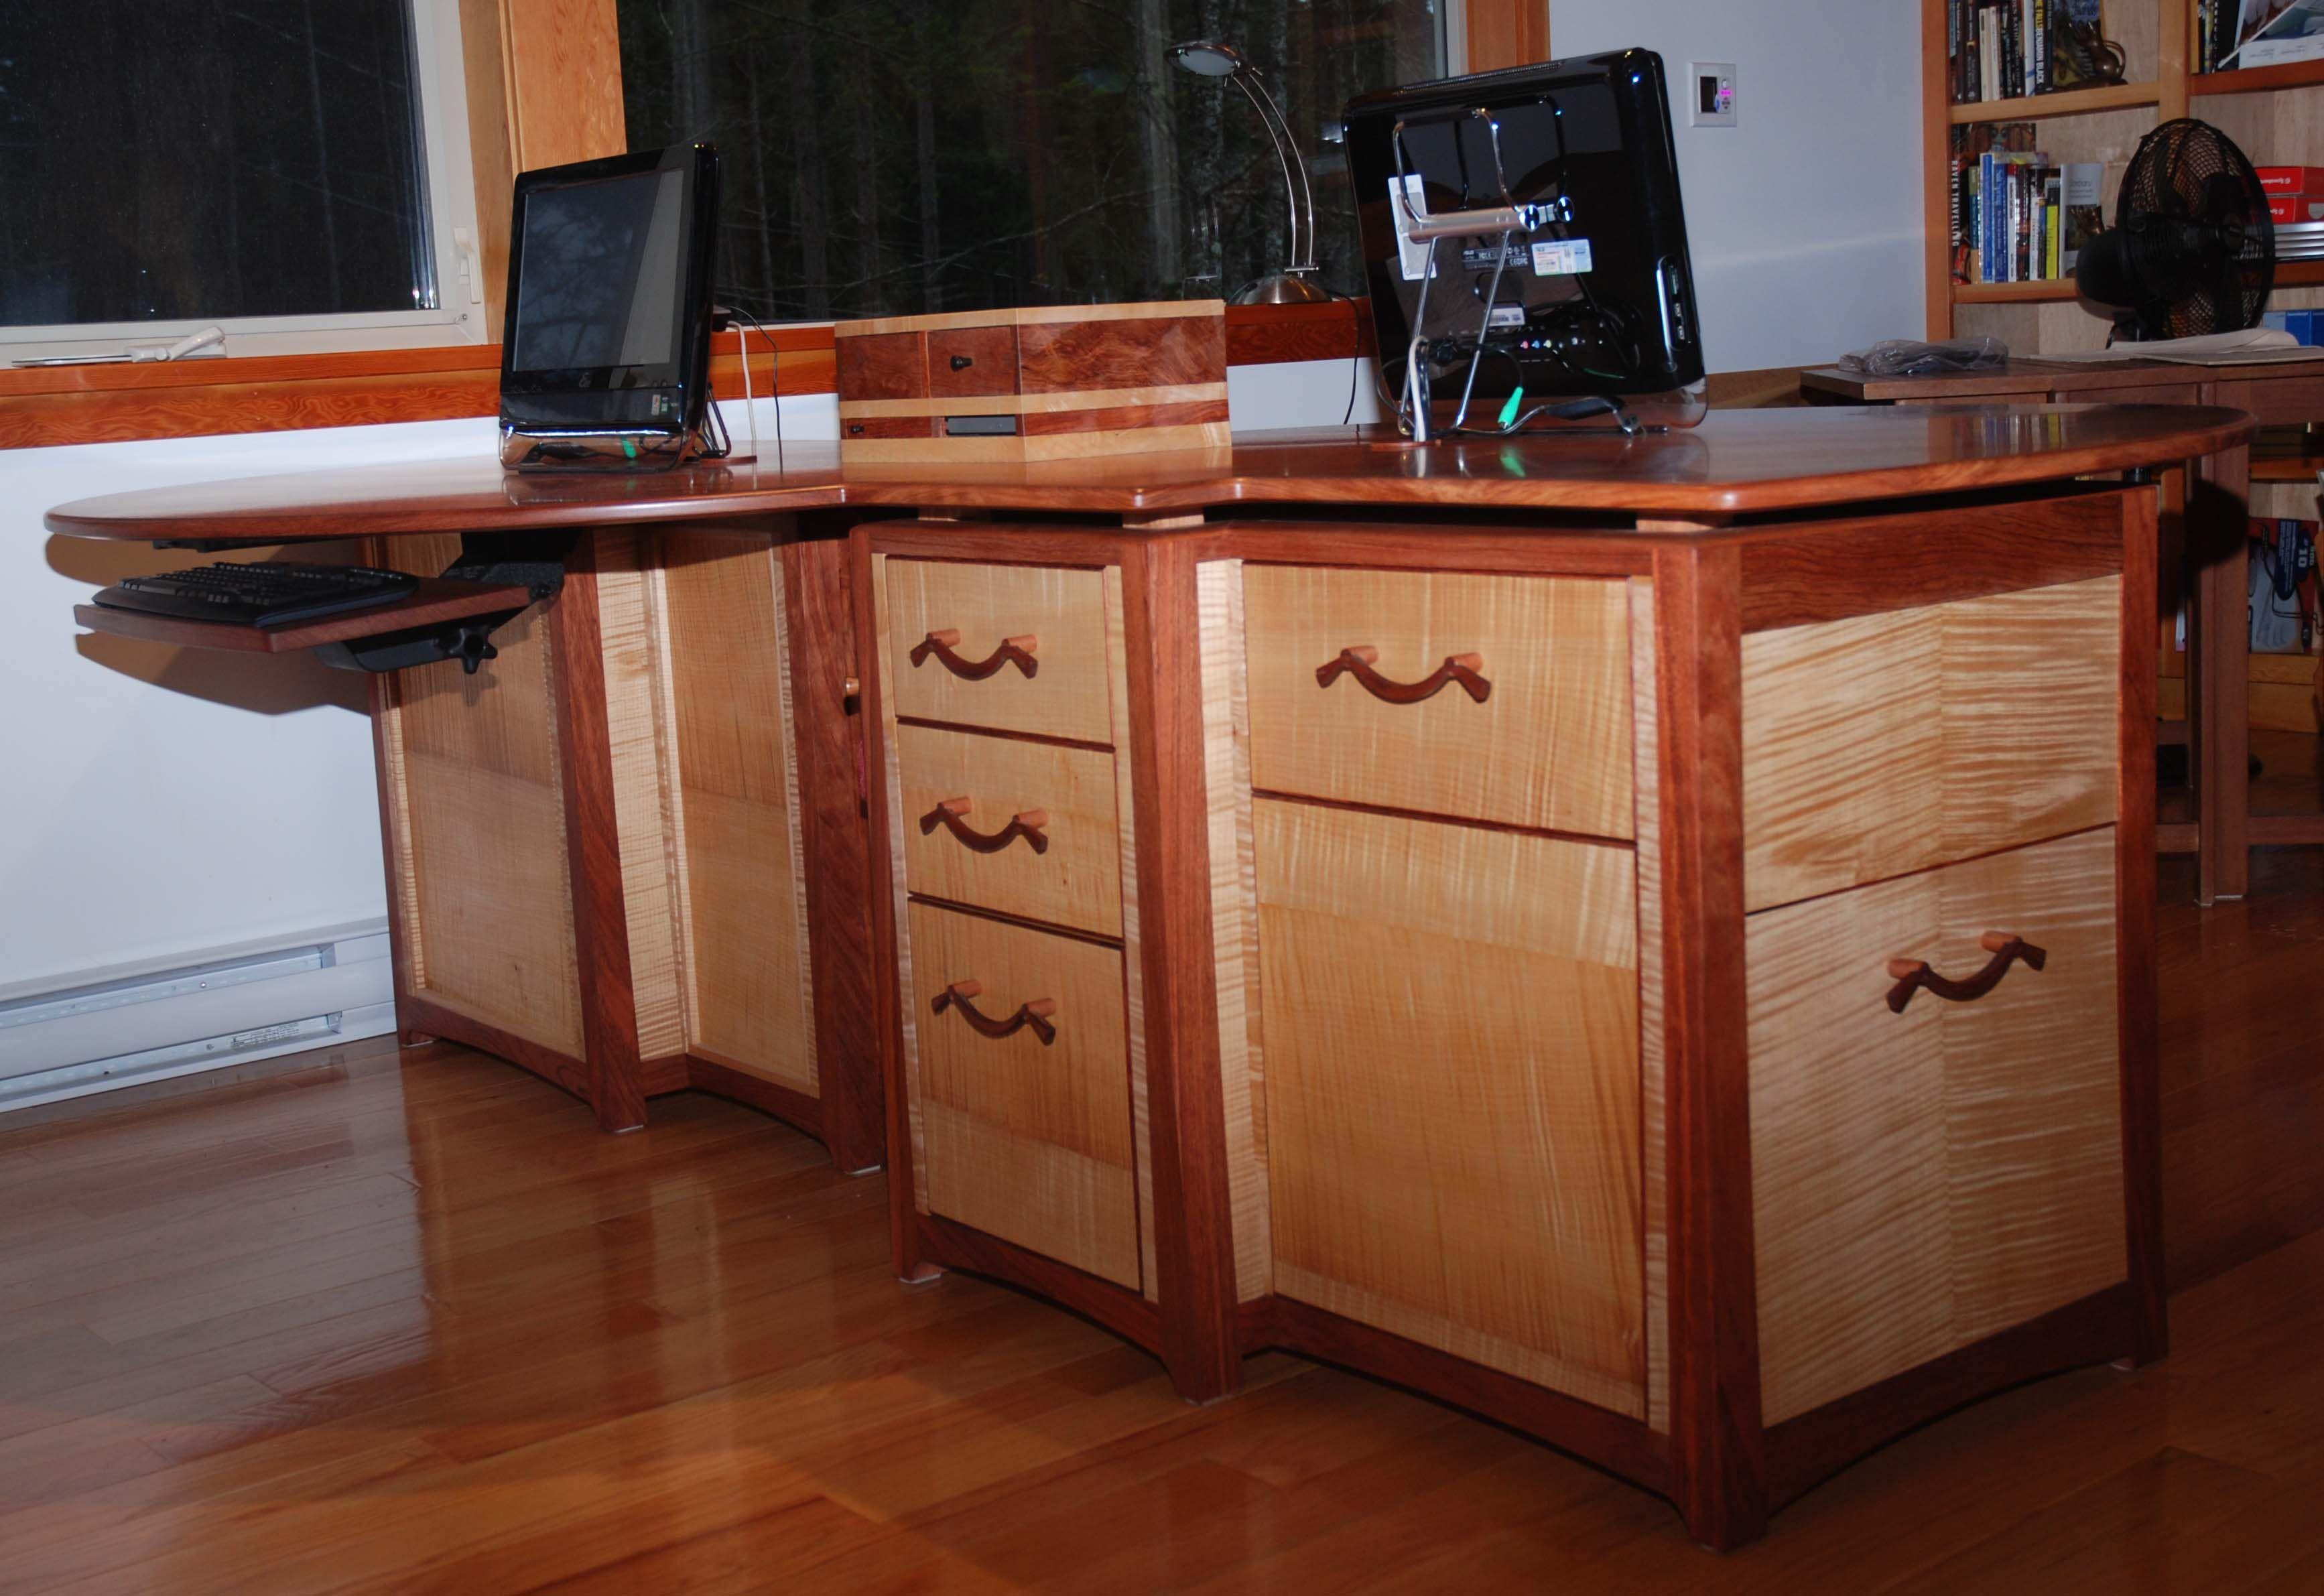 Curly Maple Cabinet Doors